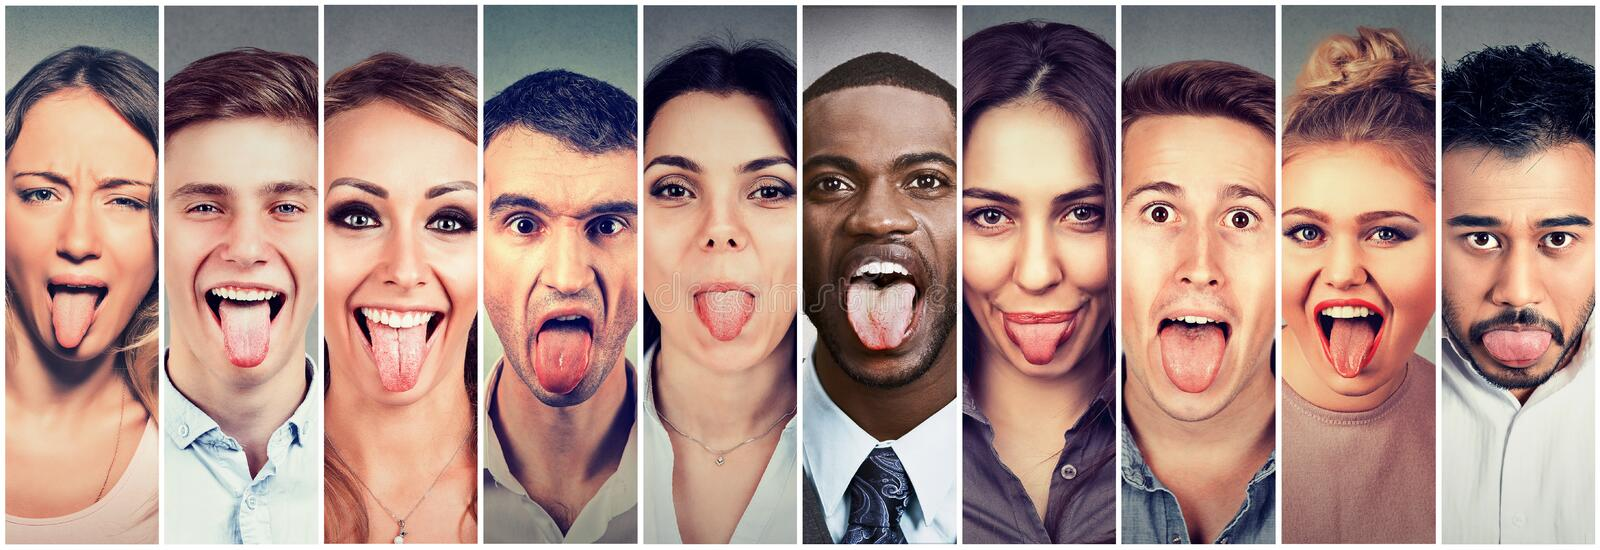 Group of multicultural young people men and women sticking out their tongues royalty free stock image